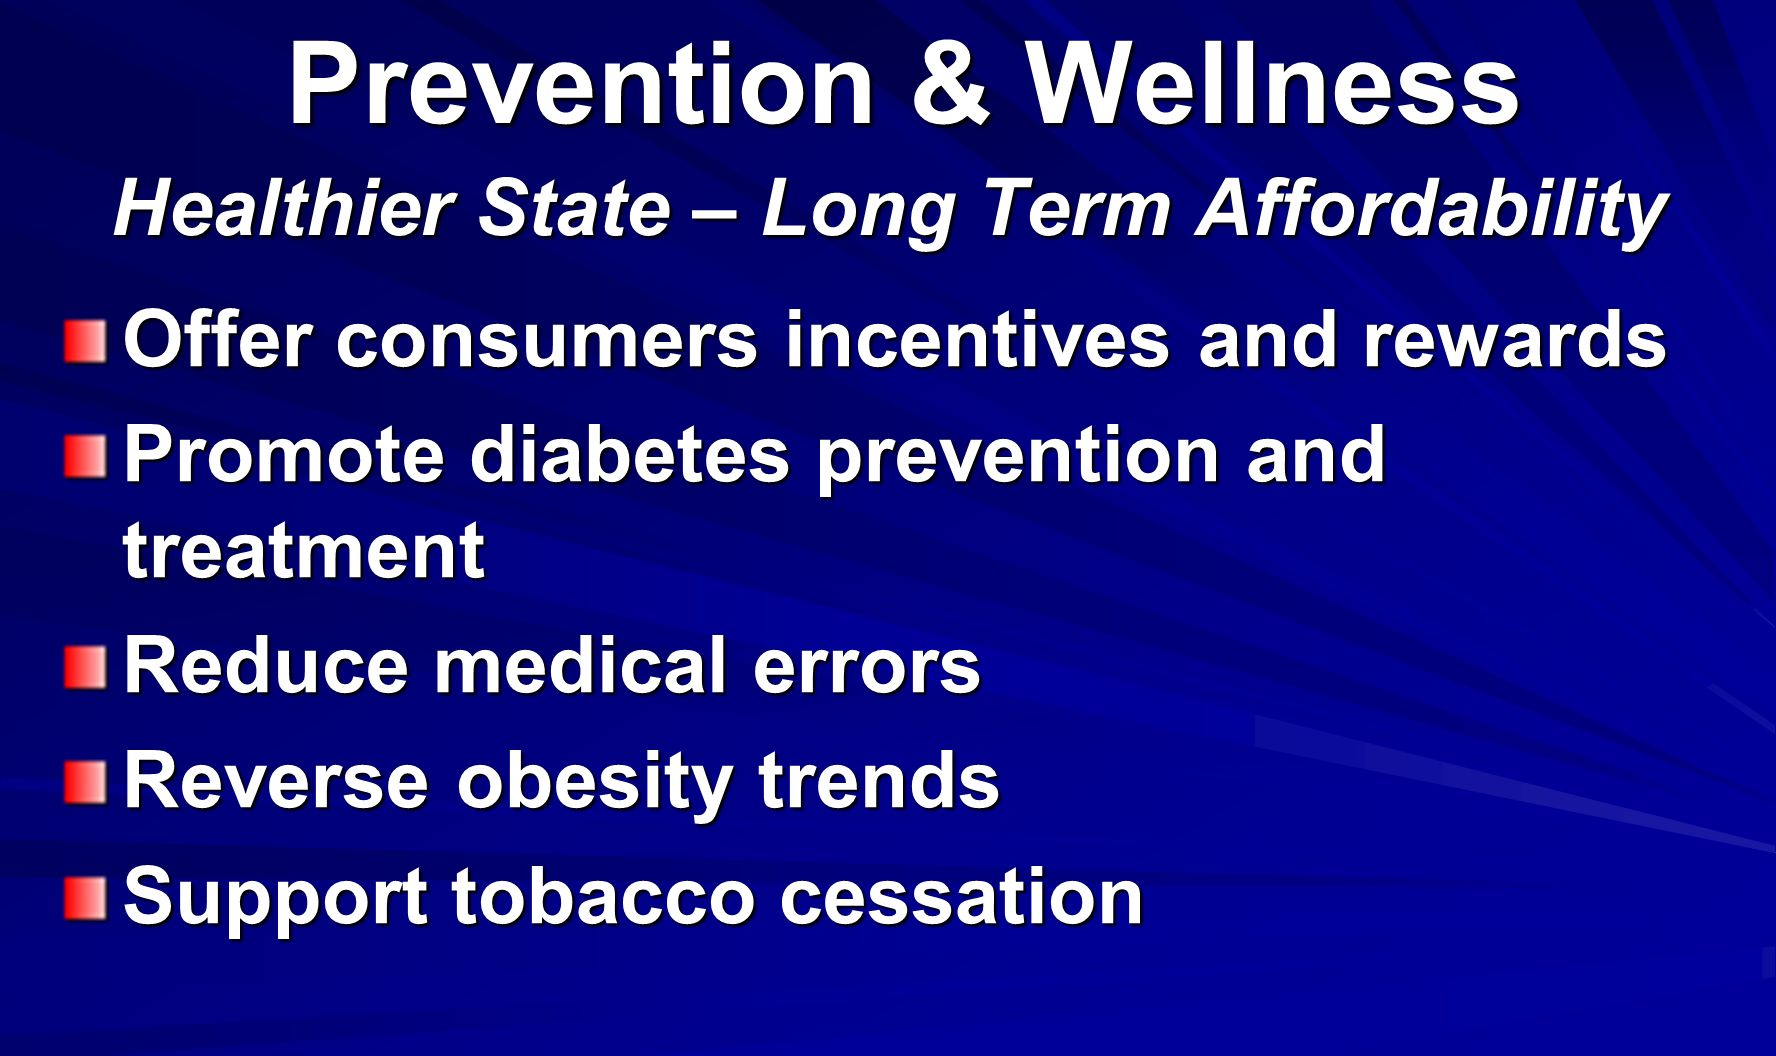 Prevention & Wellness Healthier State – Long Term Affordability Prevention & Wellness Healthier State – Long Term Affordability Offer consumers incent